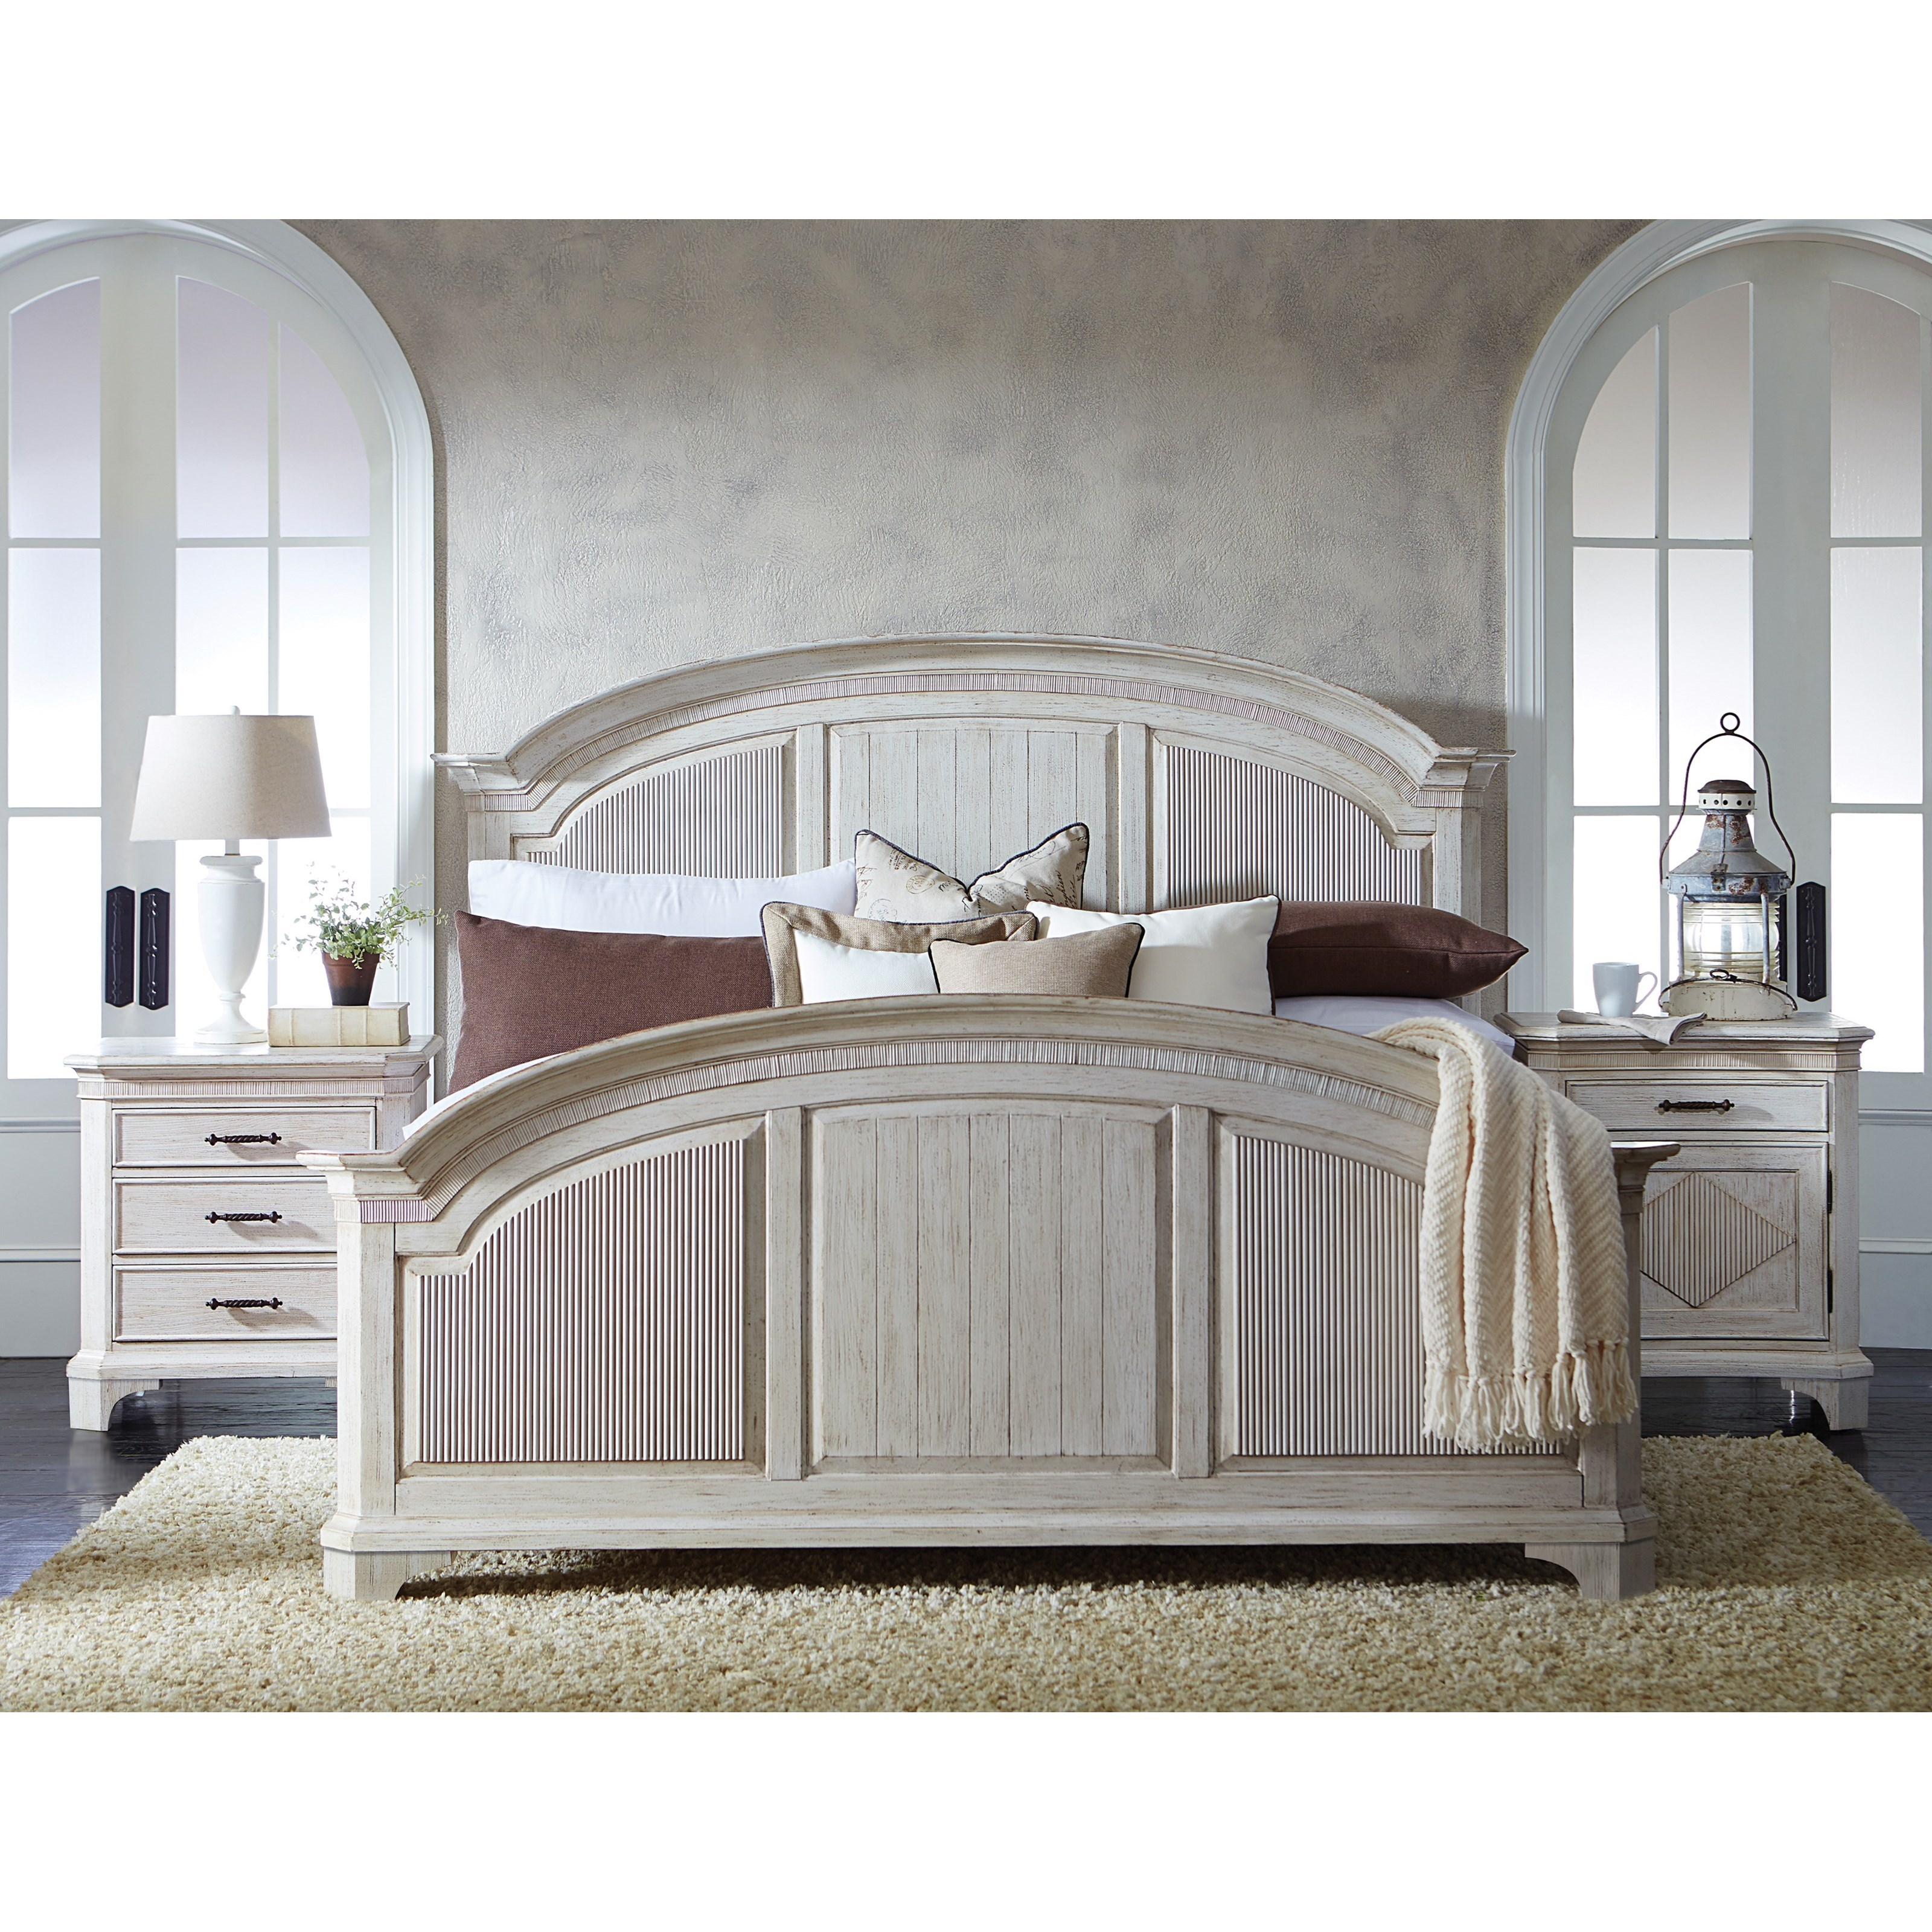 Riverside Furniture Aberdeen Queen Bedroom Group 4 - Item Number: 212 Q Bedroom Group 4